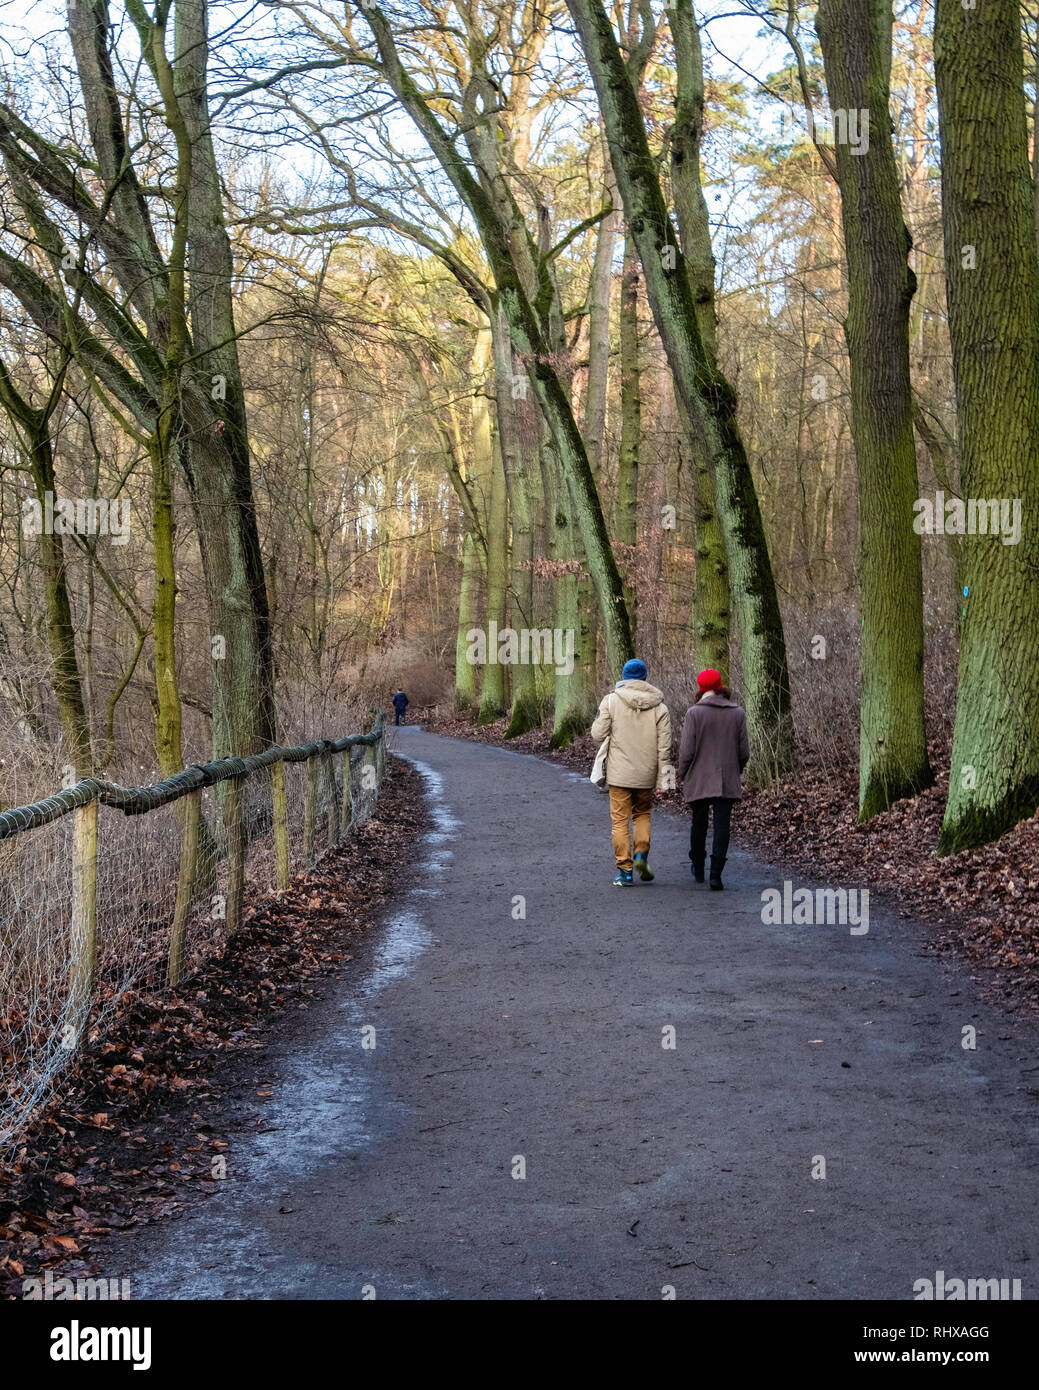 Krumme Lanke, Berlin, Germany. 4th February 2019. Berliners brave the cold weather to walk in the Grunewald forest and admire the picturesque frozen Krumme Lanke lake. Credit. Eden Breitz/Alamy Live News - Stock Image